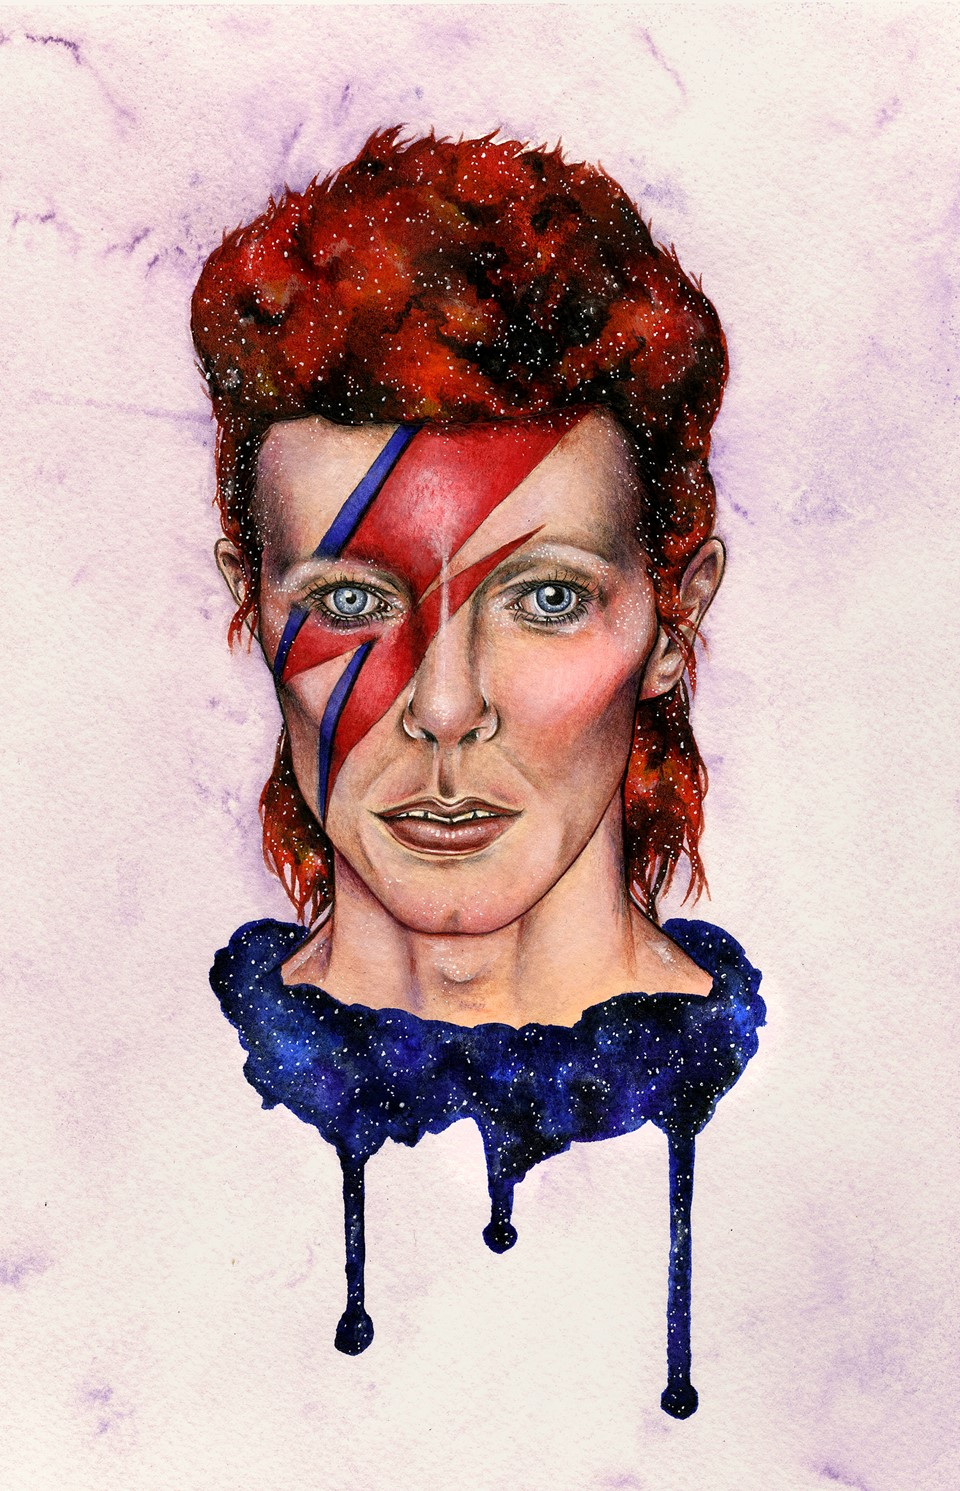 David Bowie fan art by Holly Khraibani